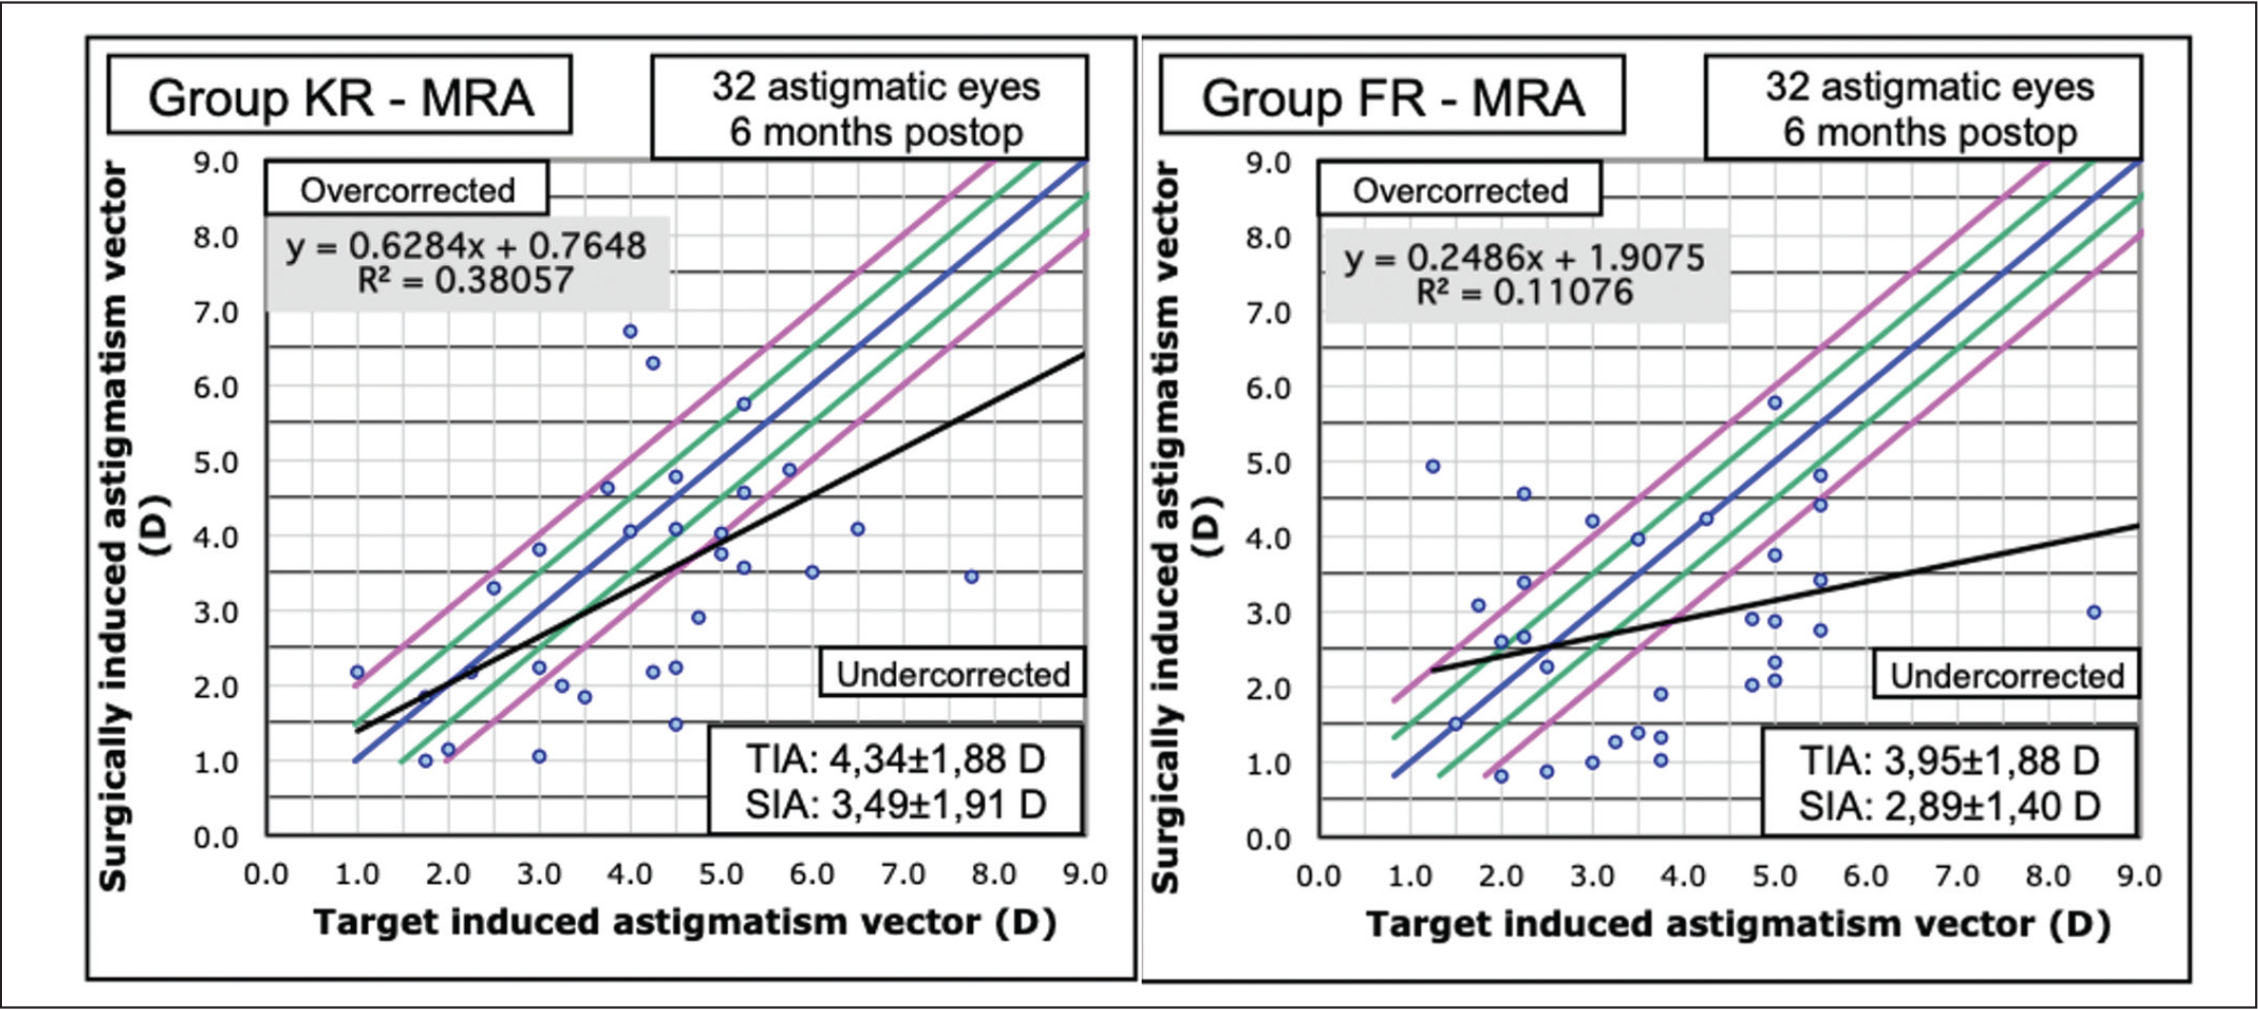 Target induced (TIA) versus surgically induced (SIA) astigmatism for manifest refractive astigmatism (MRA) in the Keraring (Mediphacos, Belo Horizonte, Brazil) group (left) and in the Ferrara (AJL Ophthalmics, Vitoria, Spain) group (right). D = diopters